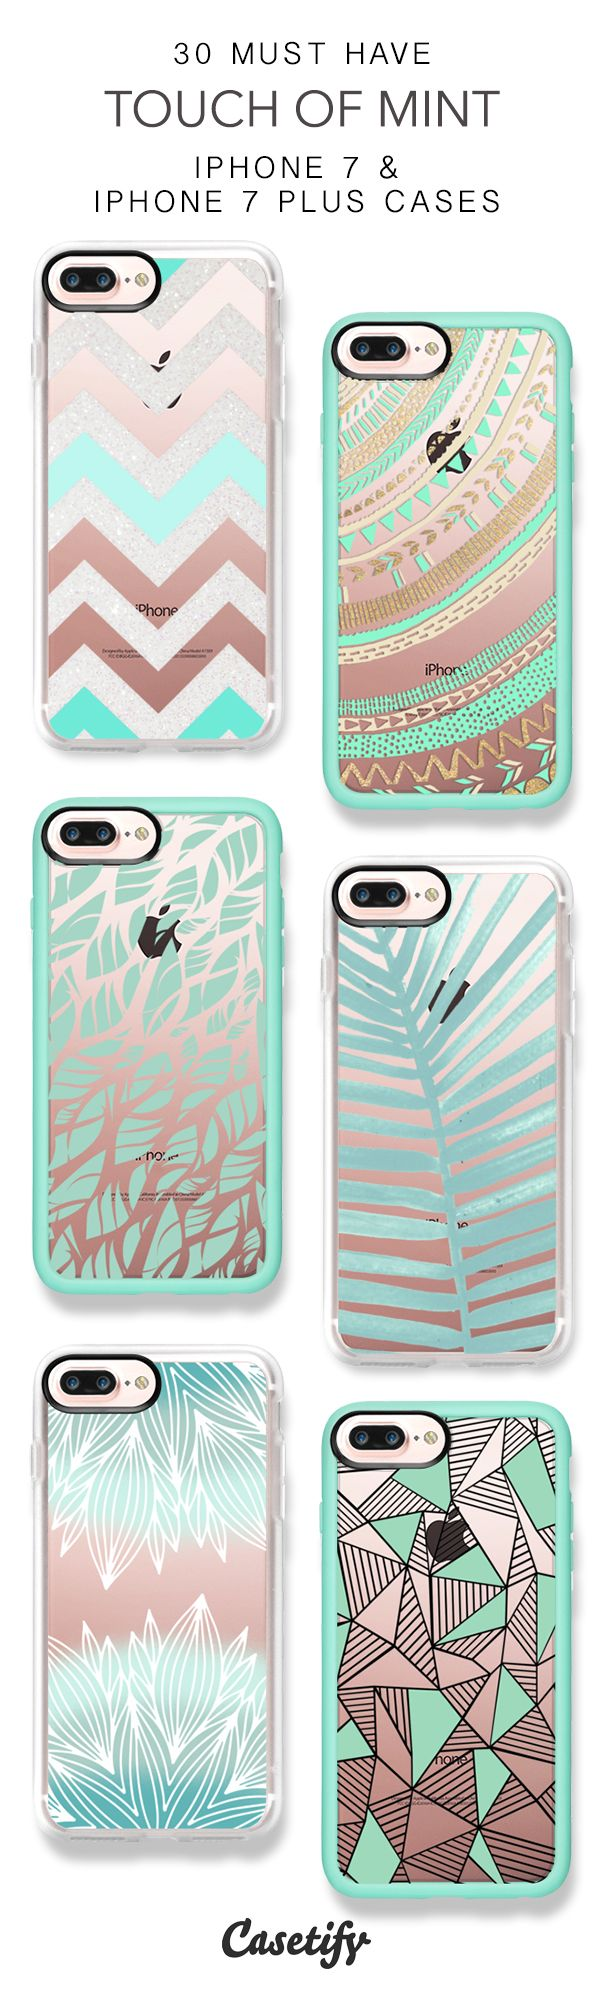 30 Must Have Touch Of Mint  Protective iPhone 7 Cases and iPhone 7 Plus Cases. More Pattern iPhone case here > https://www.casetify.com/collections/top_100_designs#/?vc=bpApRZc7BZ